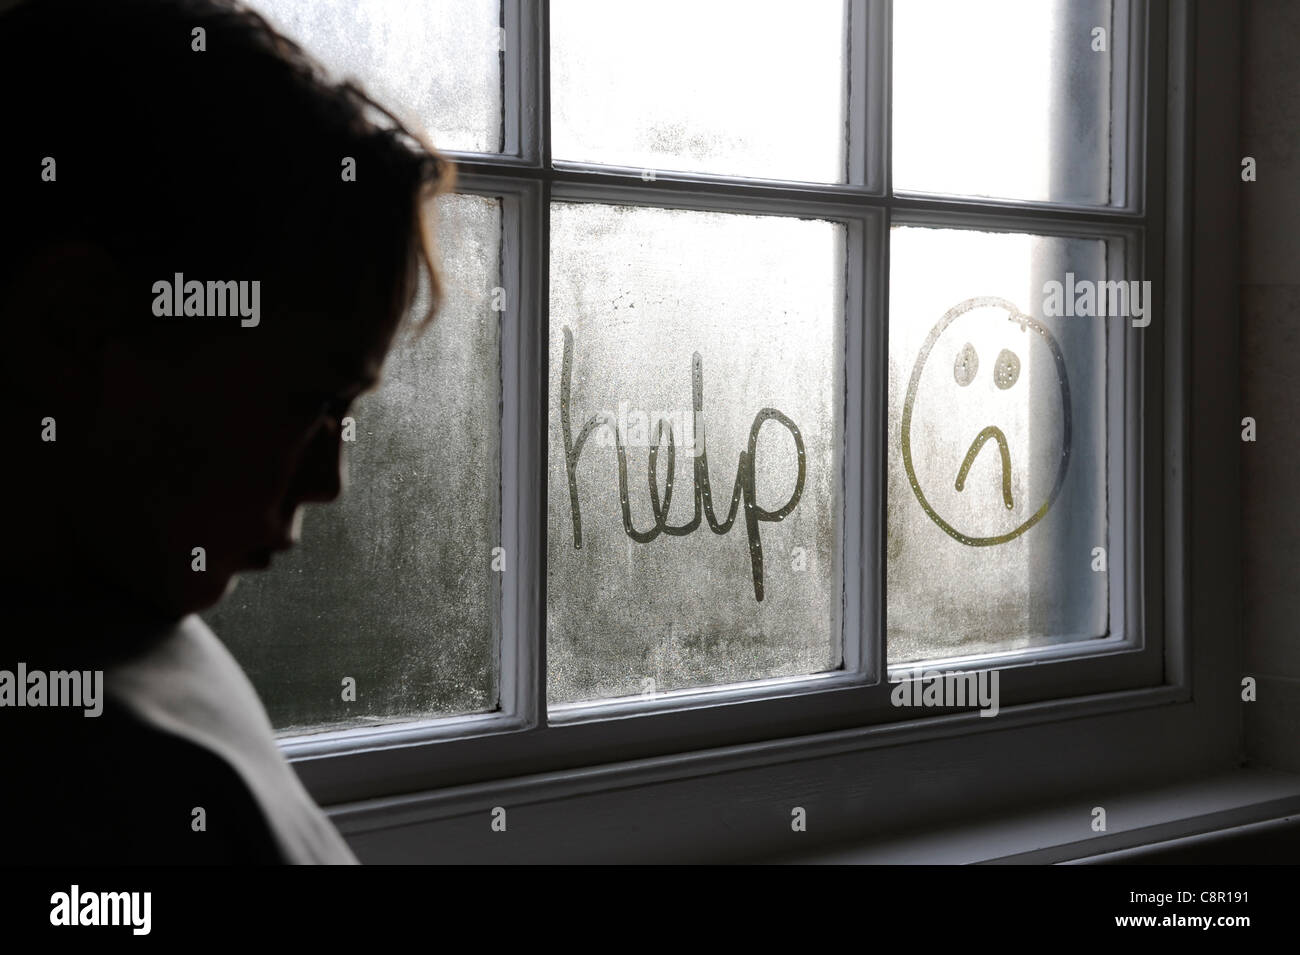 6 year old child writing help on a window in condensation - Stock Image